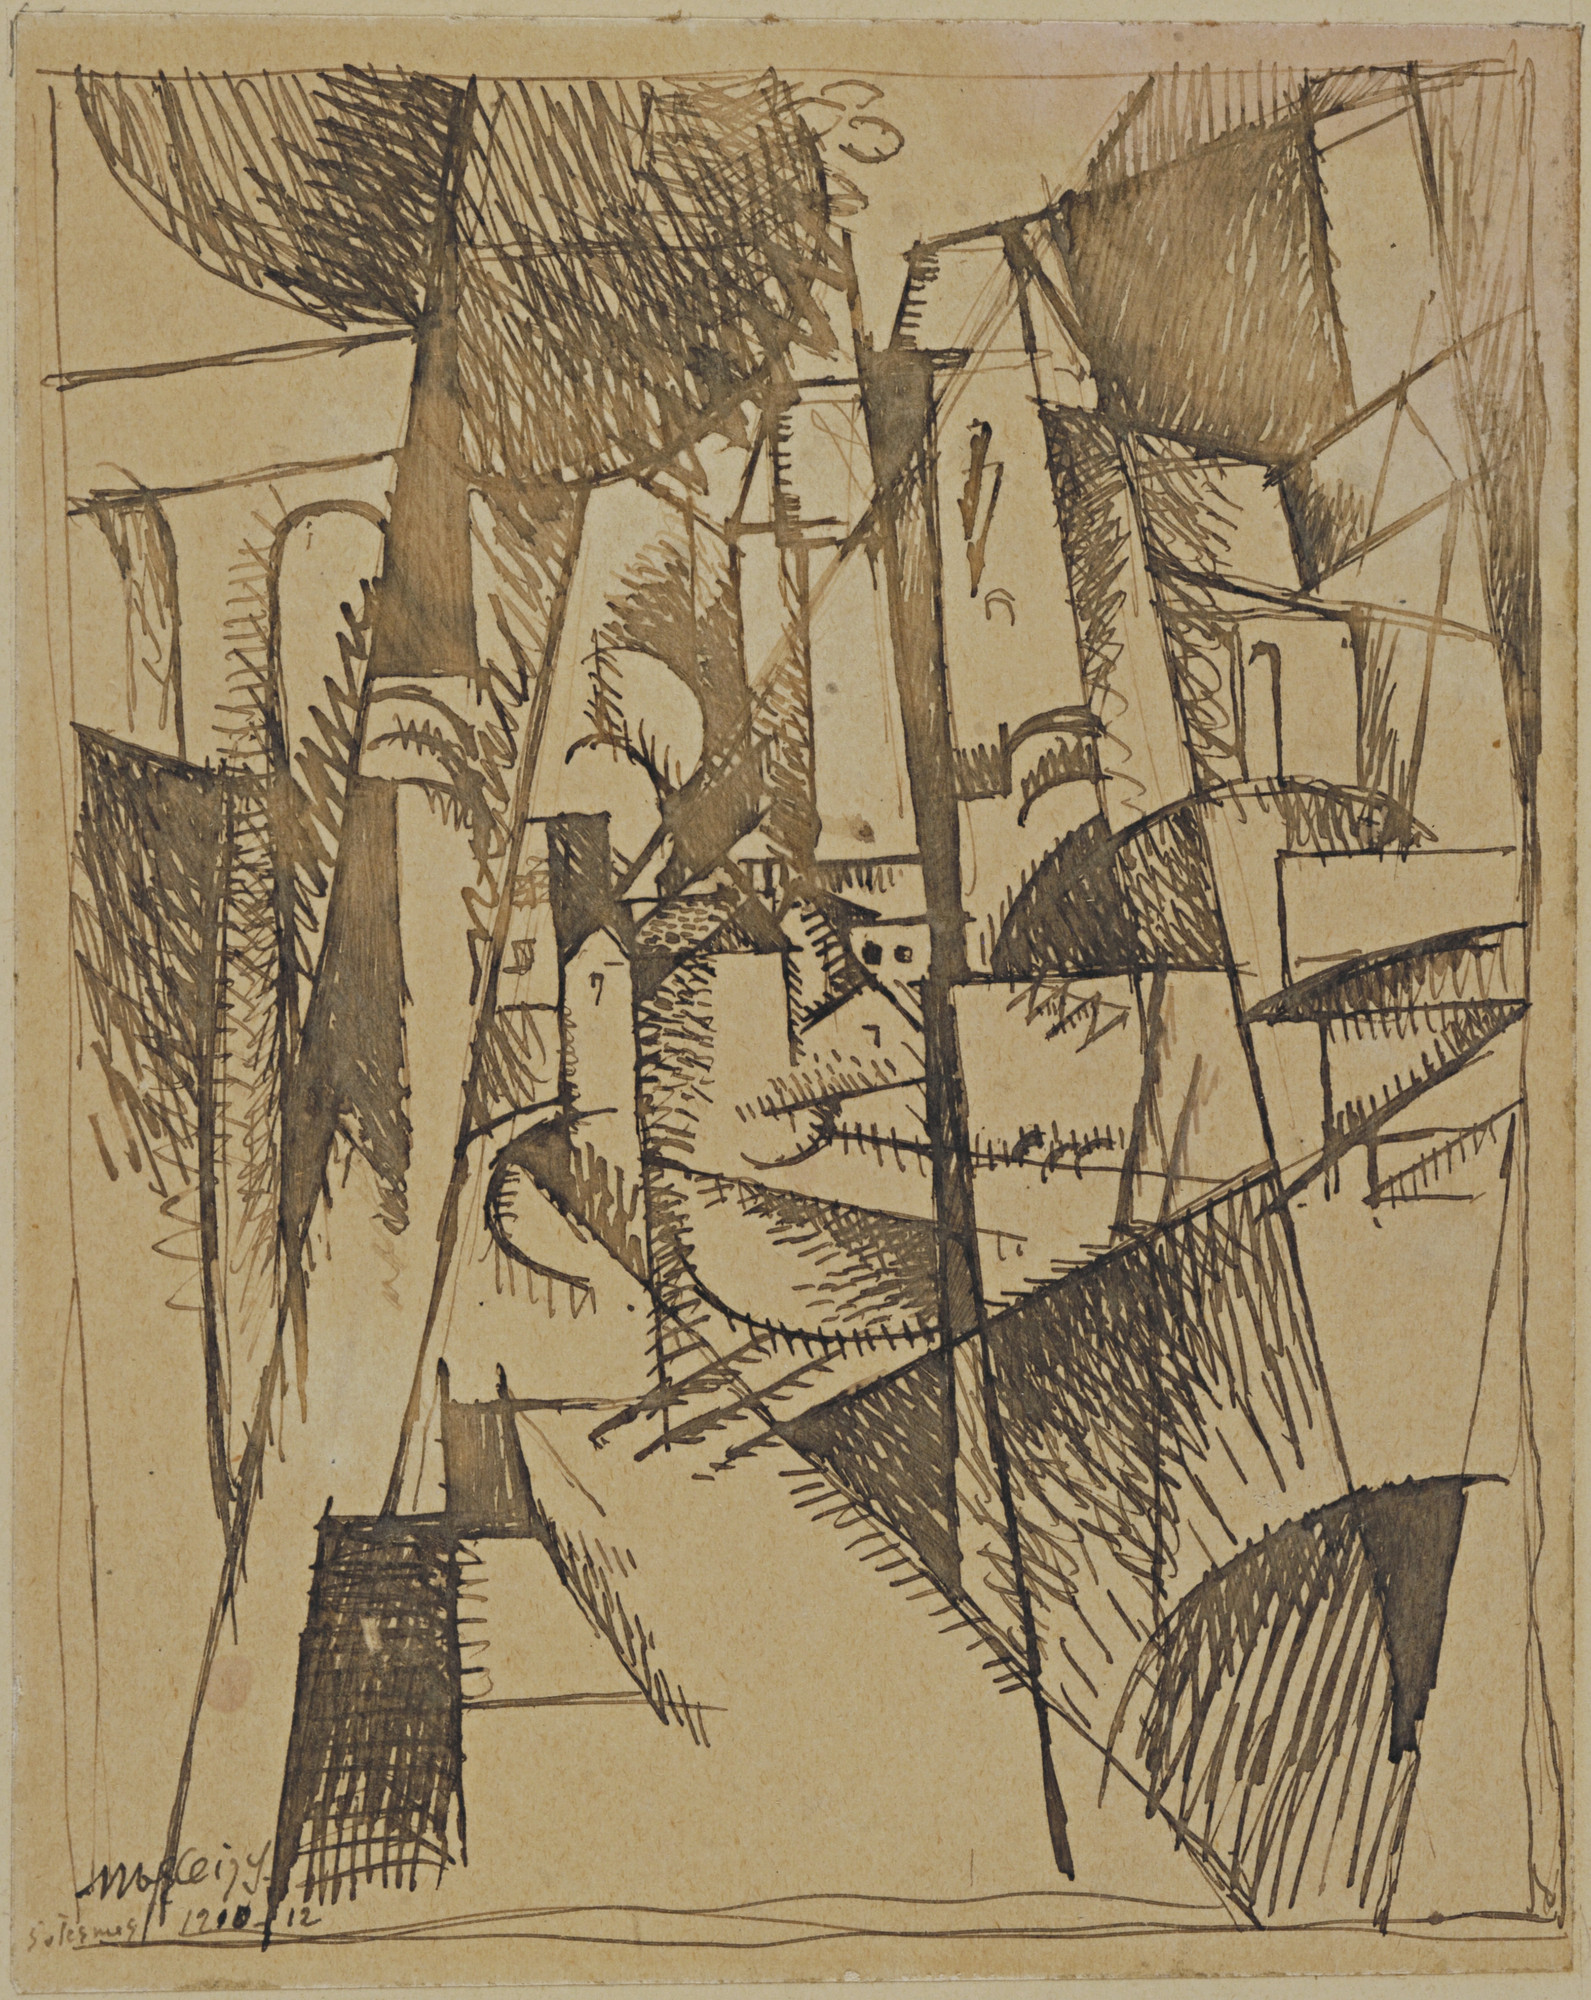 Albert Gleizes. Landscape with Bridge and Viaduct. 1910